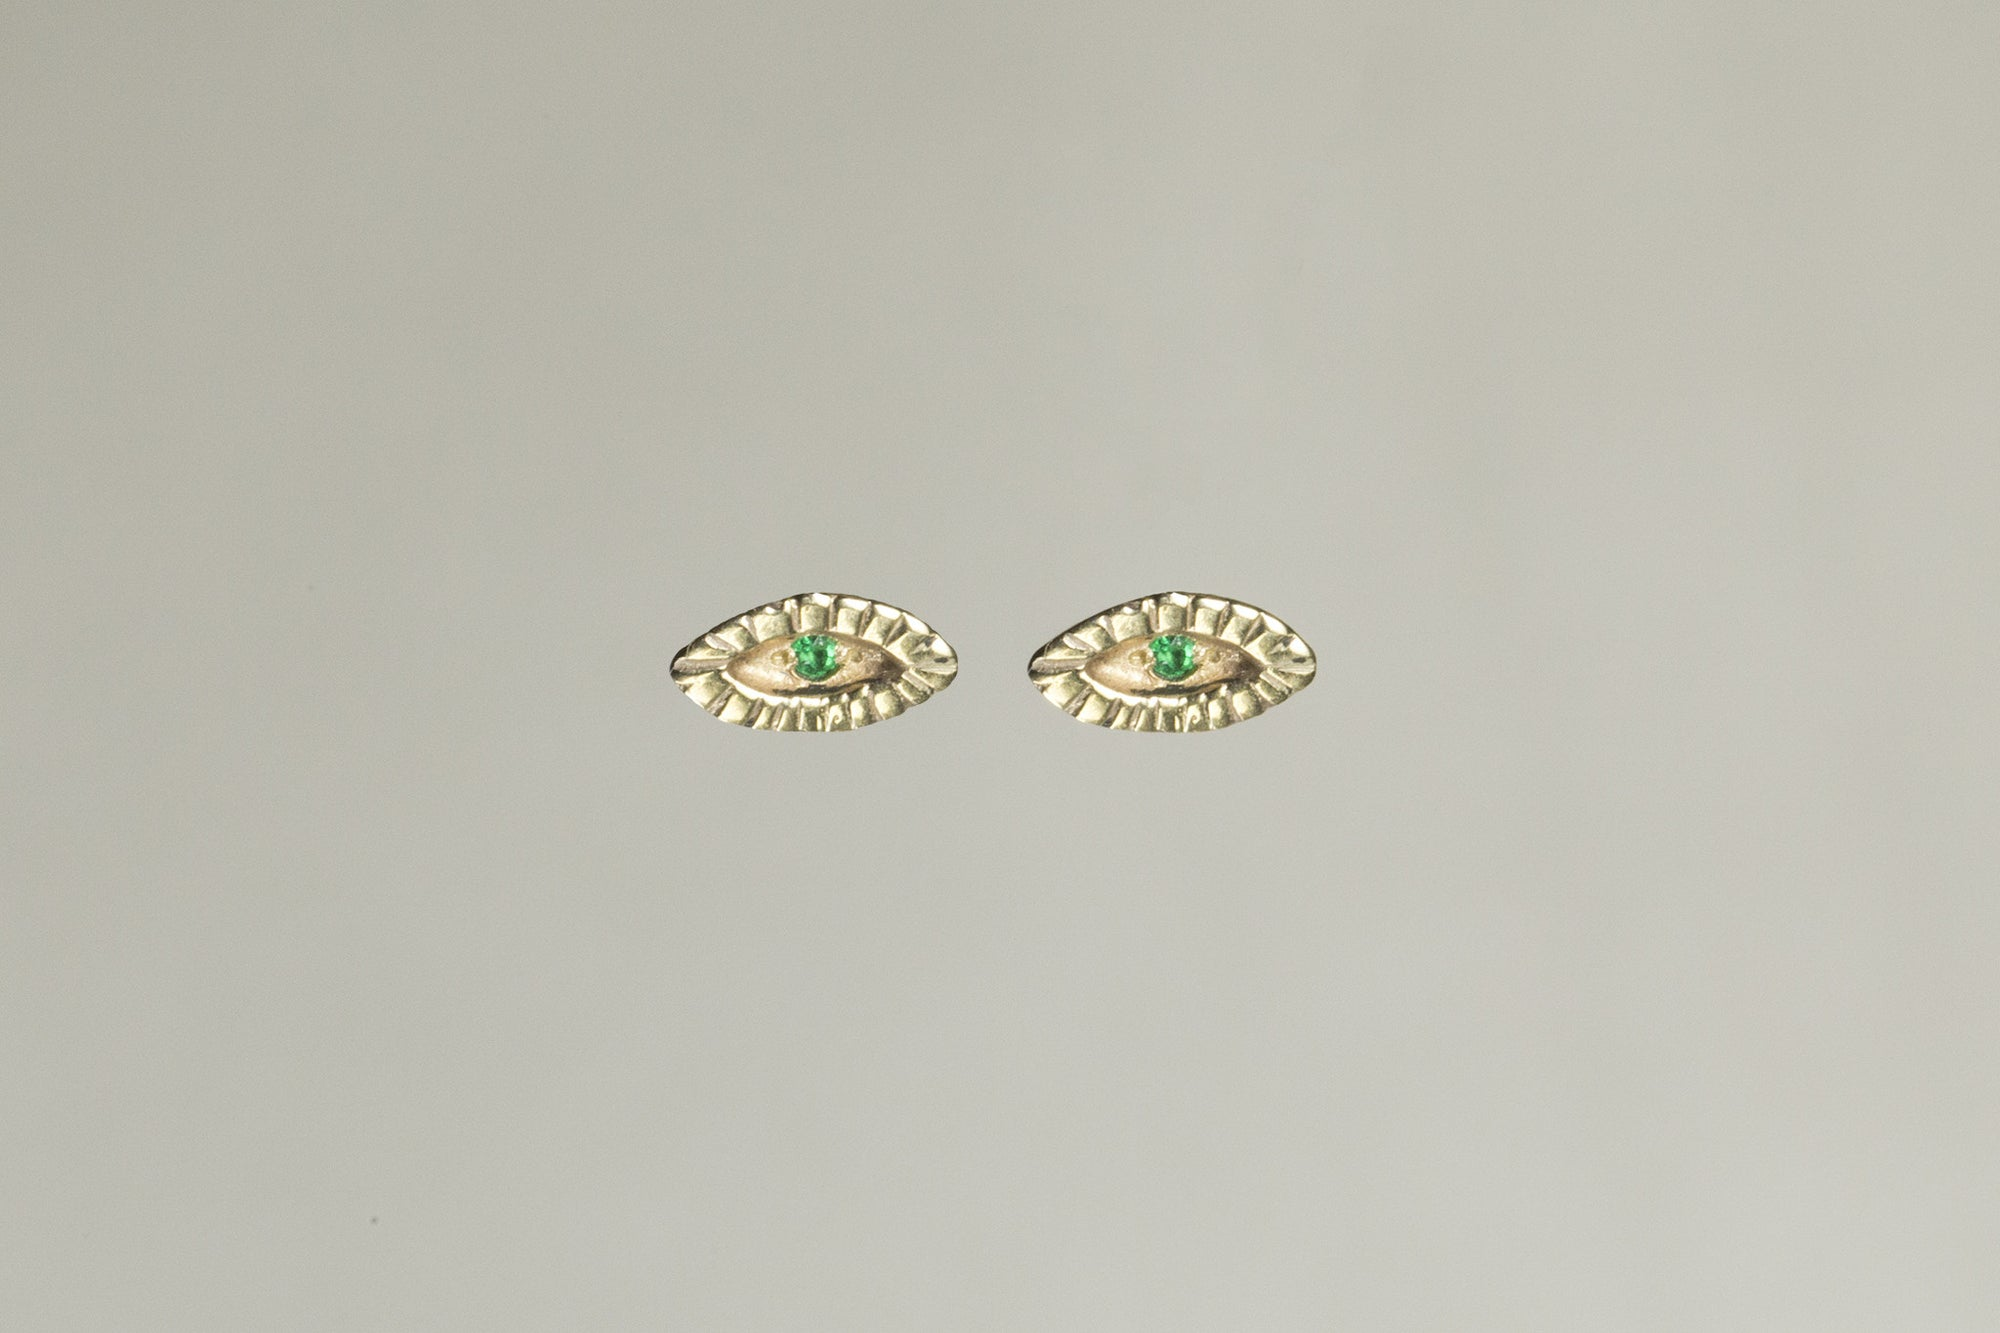 Tiny Eye Gold Stud Earrings with Emerald by Momocreatura